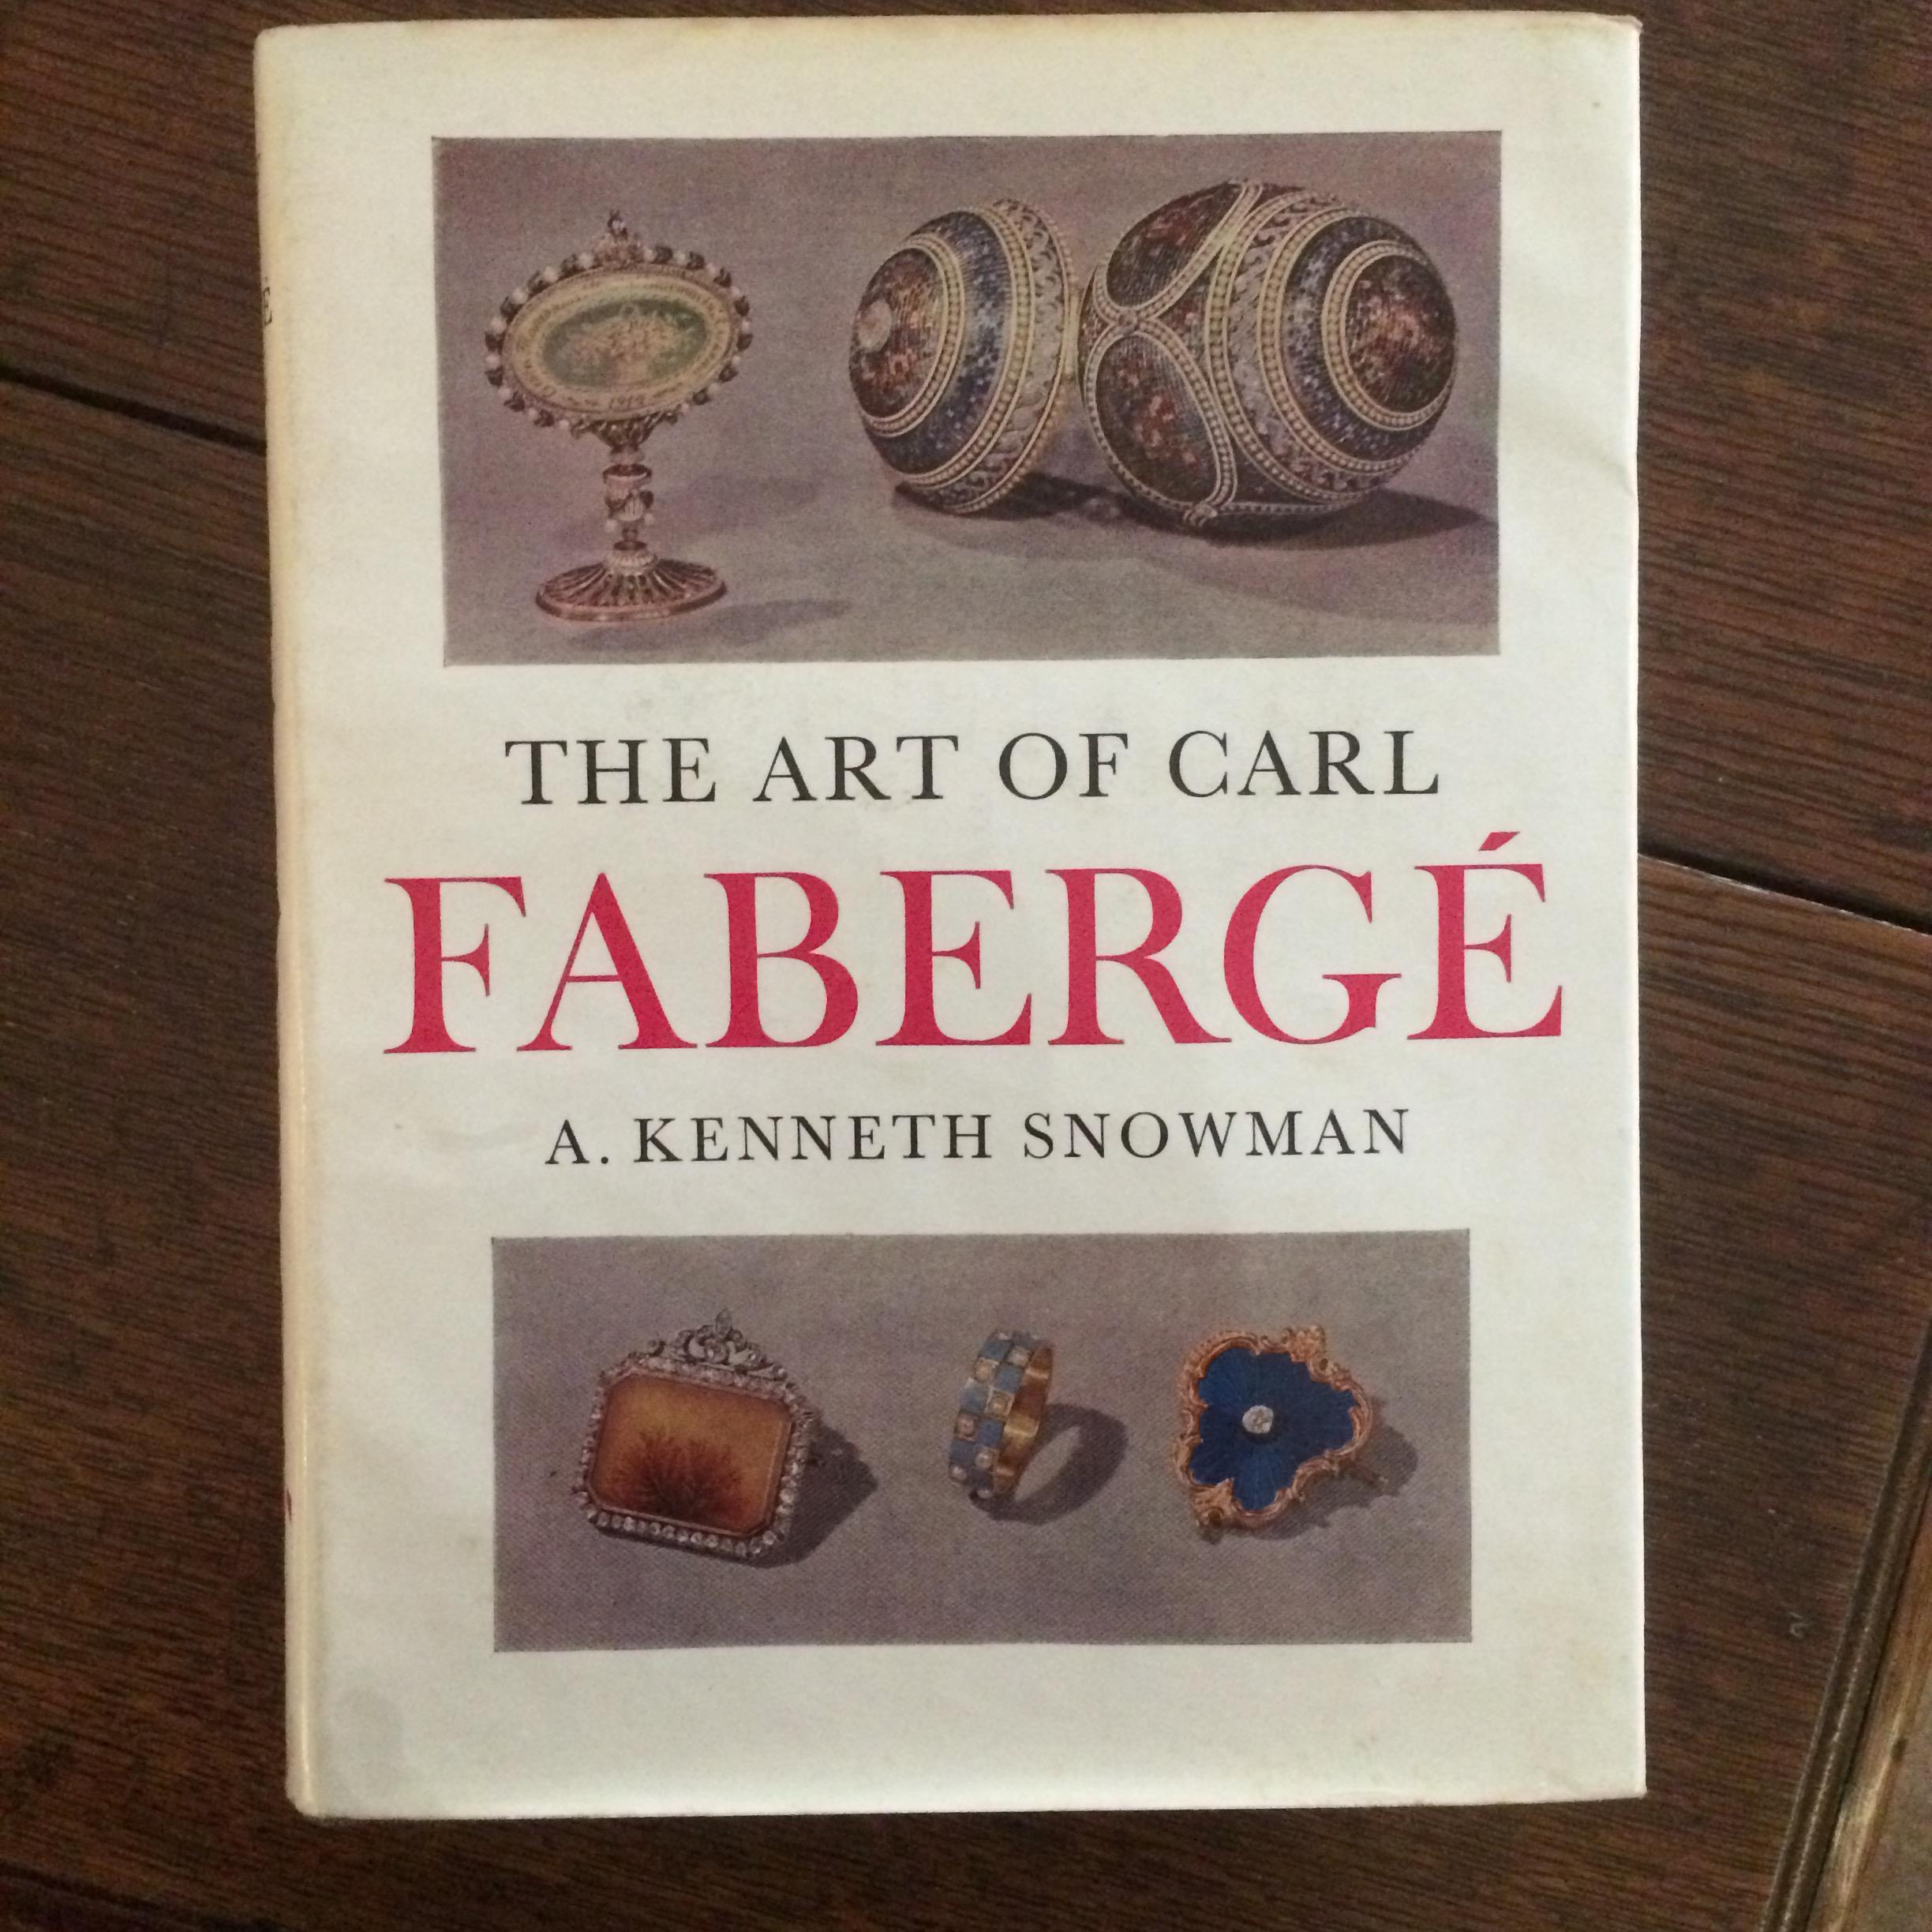 The Art of Carl Fabergé